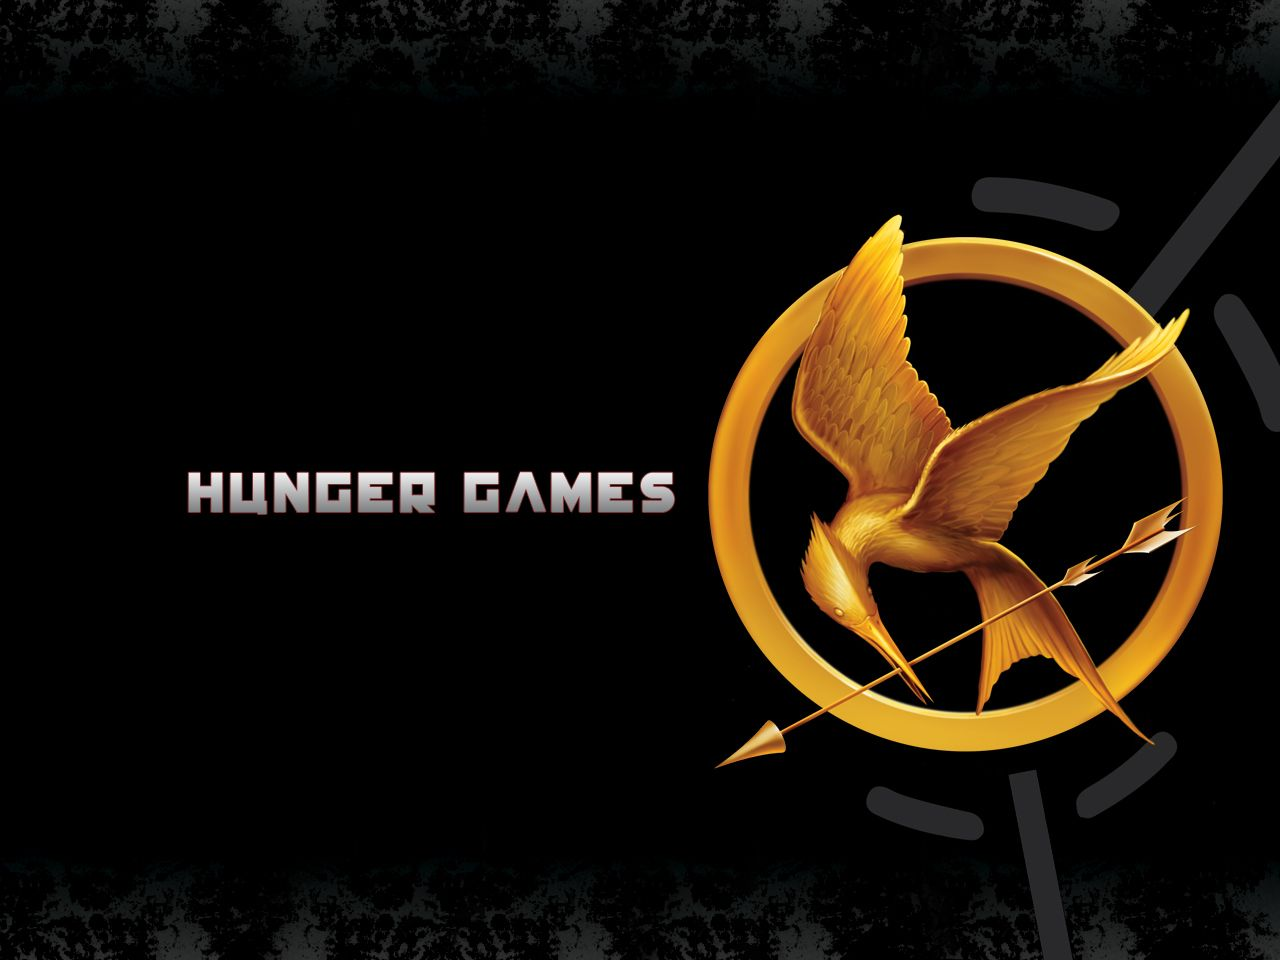 You would have to be pretty fit to survive the Hunger Games ...